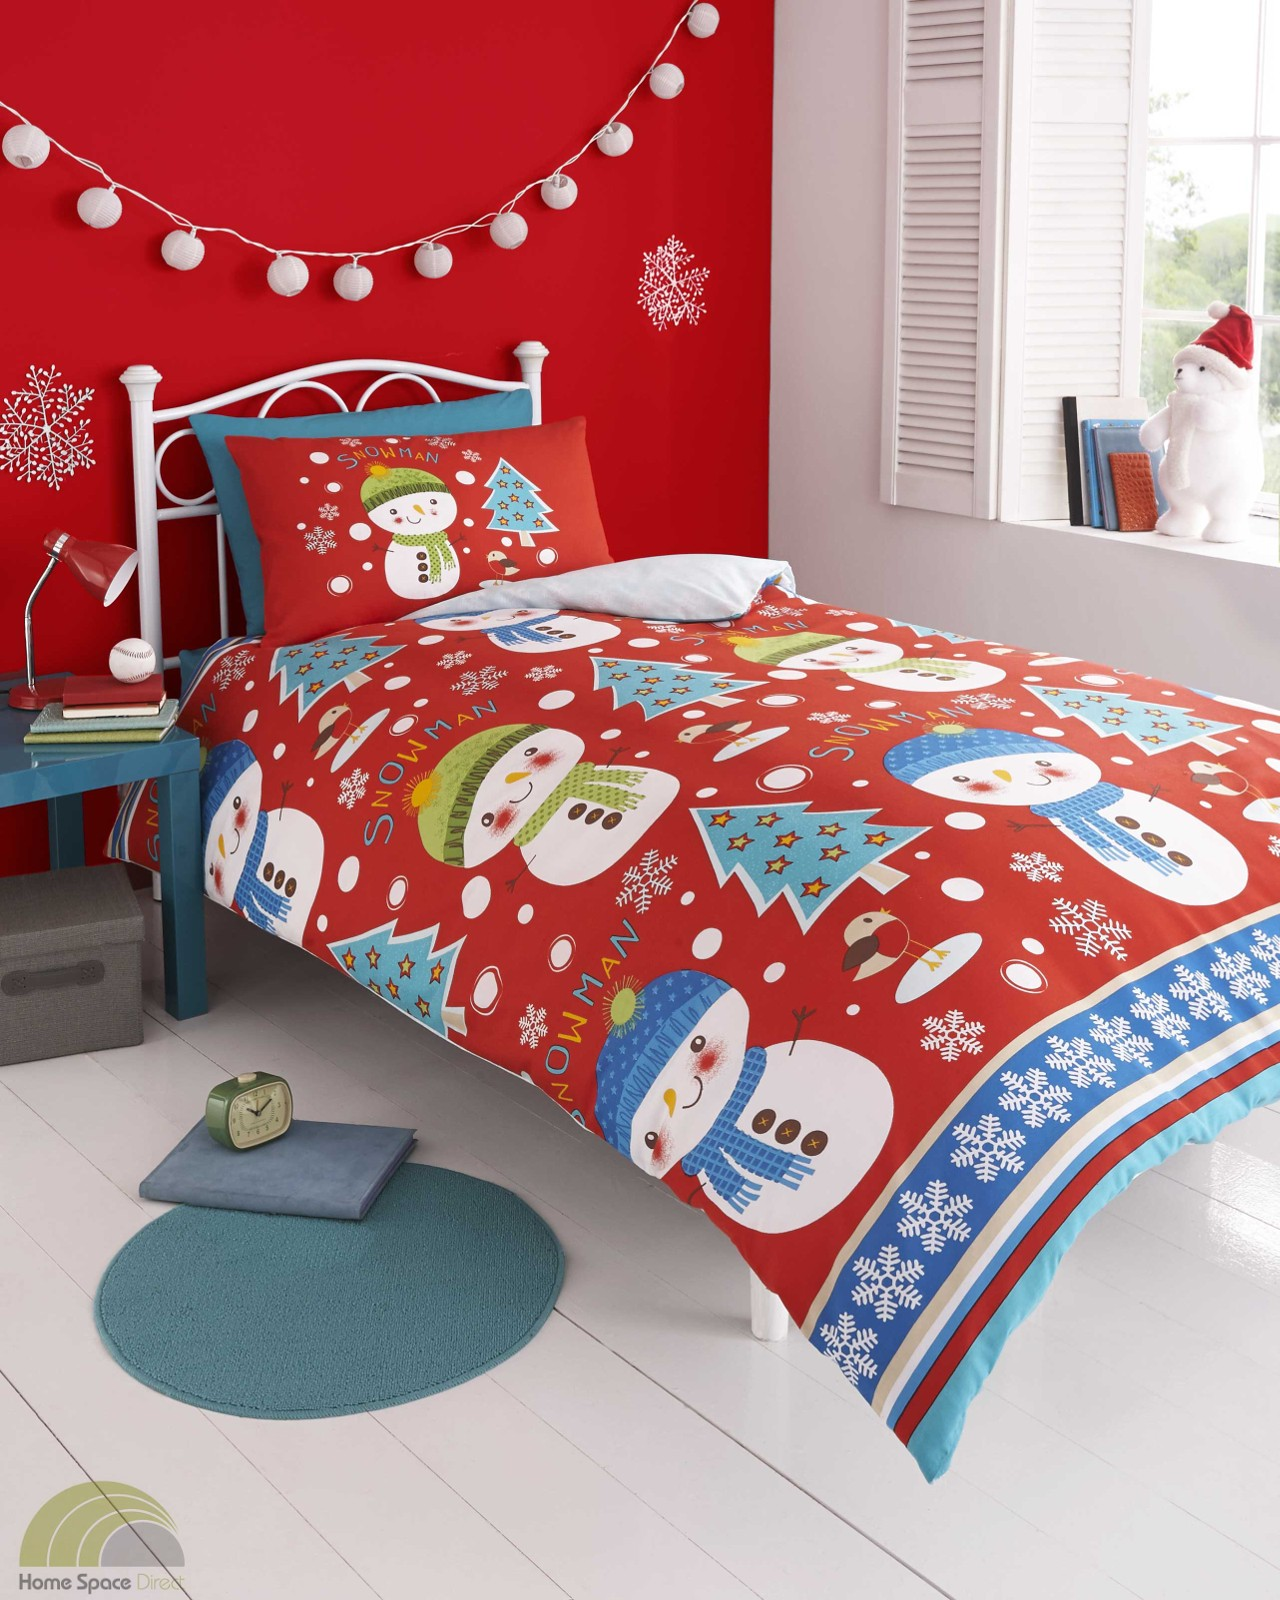 Anself 3D Printed Christmas Bedding Sets Duvet Cover + 2pcs Pillowcases + Bed Sheet. by Anself. $ $ 35 FREE Shipping on eligible orders. 3 Duvet Cover Set Queen with White Tree Pattern,% Cotton Reversible Stripes Duvet Cover with Zipper Closure,Teen Boys Kids Bedding Set Full Queen. by VM VOUGEMARKET. $ $ 58 99 Prime. Only.